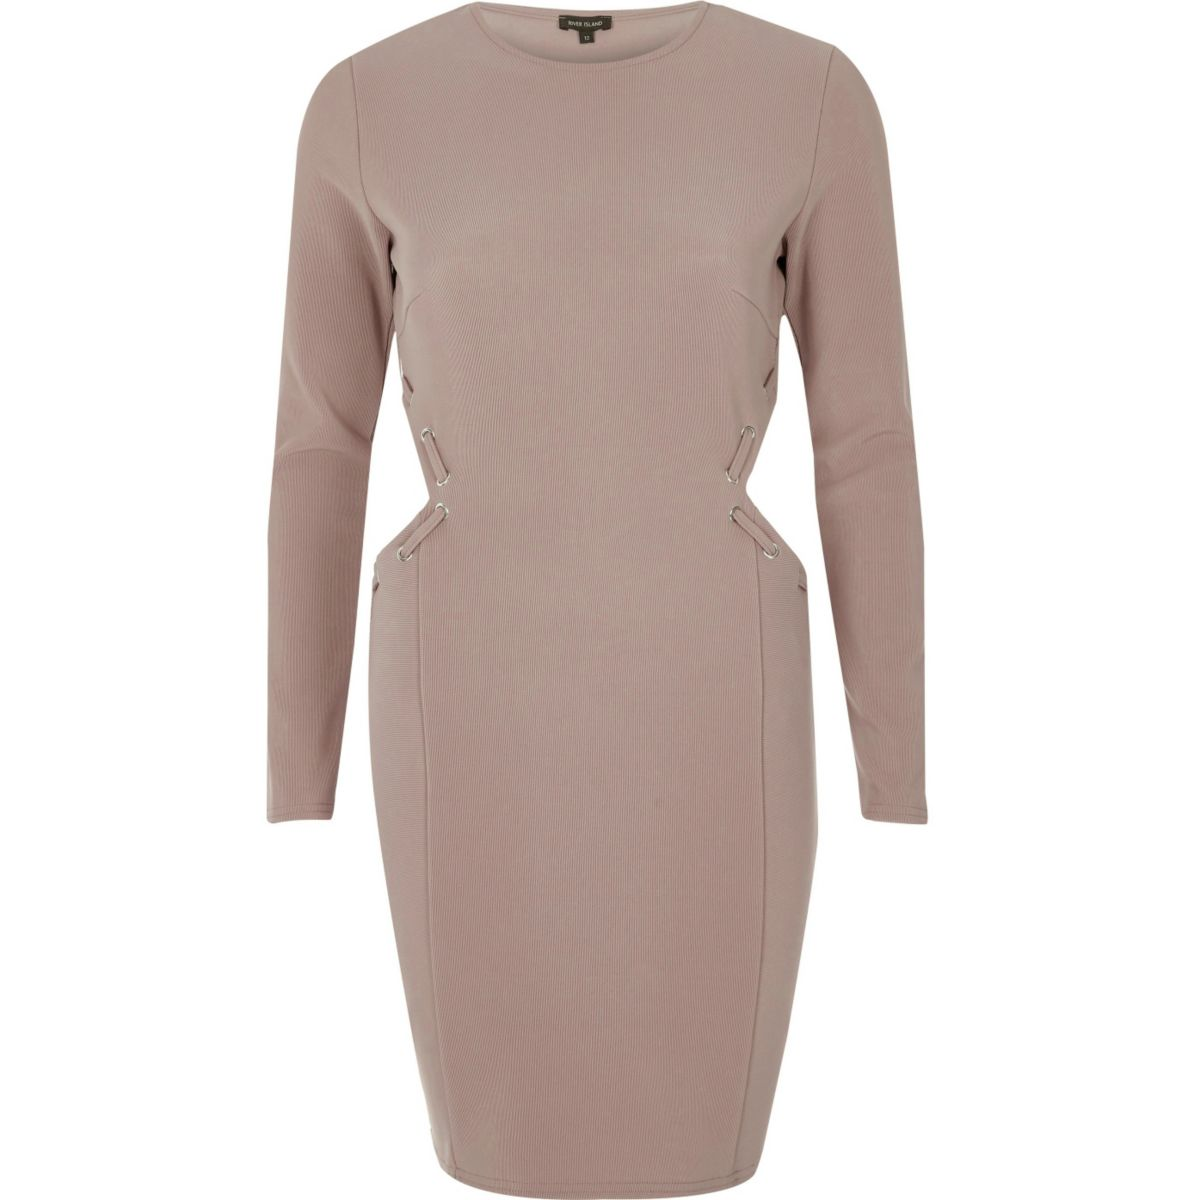 Pink cut out eyelet bodycon dress